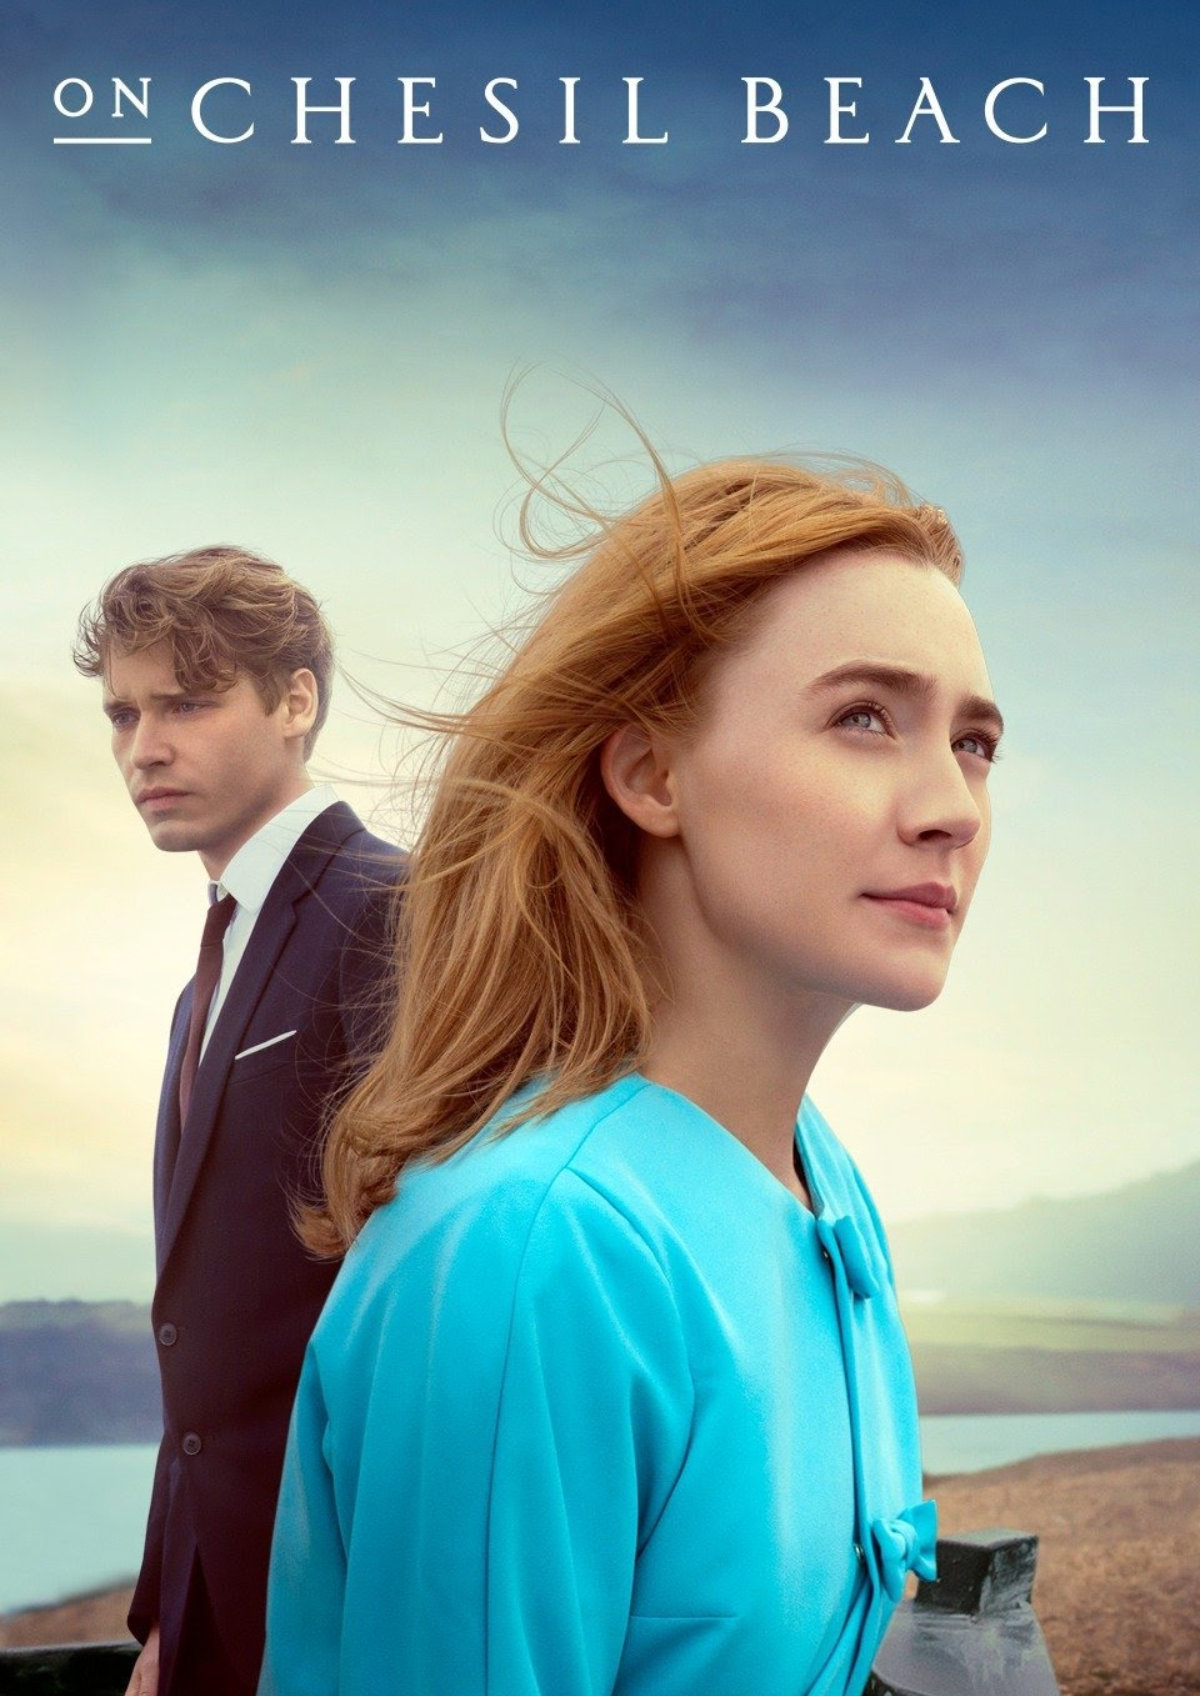 'On Chesil Beach' movie poster